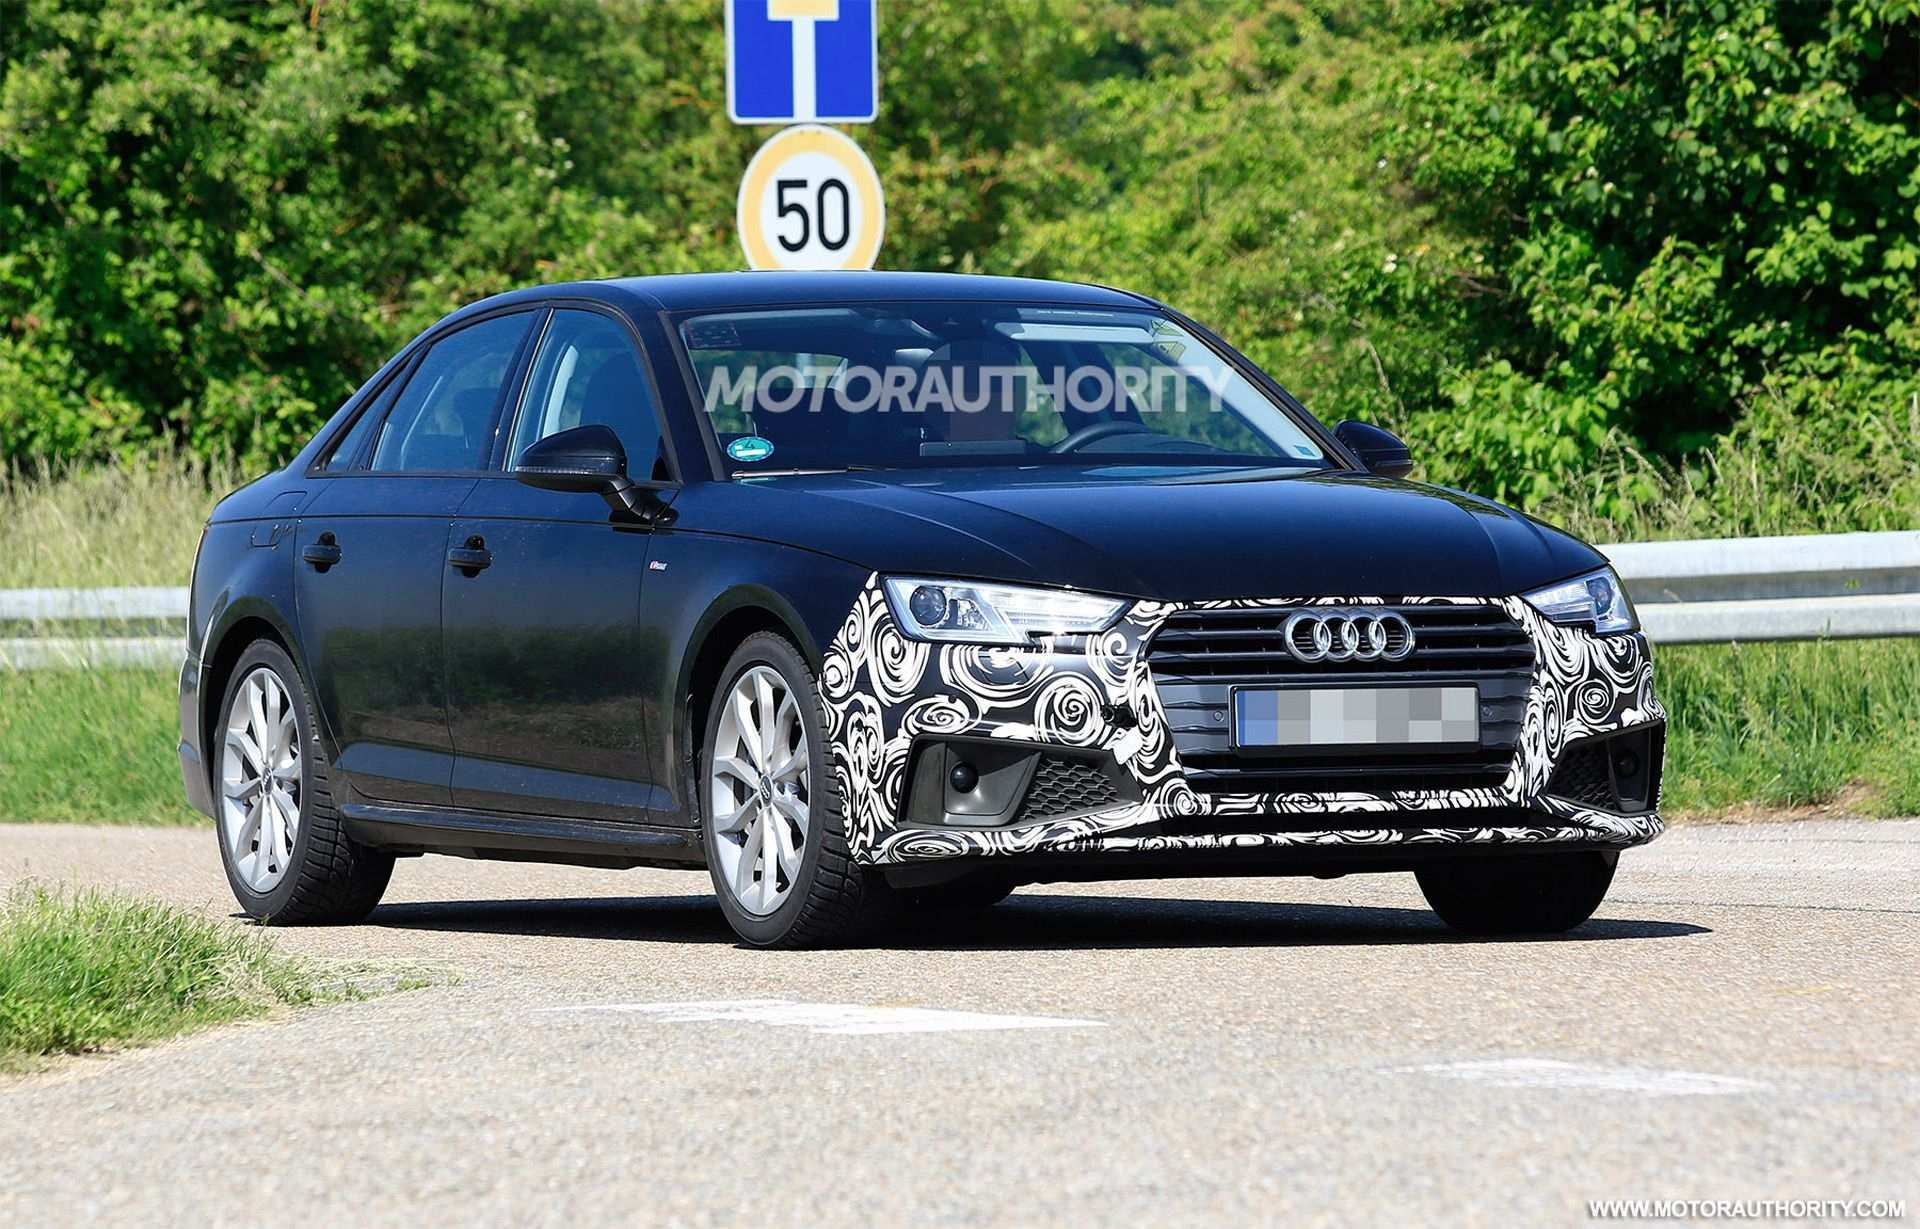 75 All New 2020 Audi Q4s Spesification with 2020 Audi Q4s